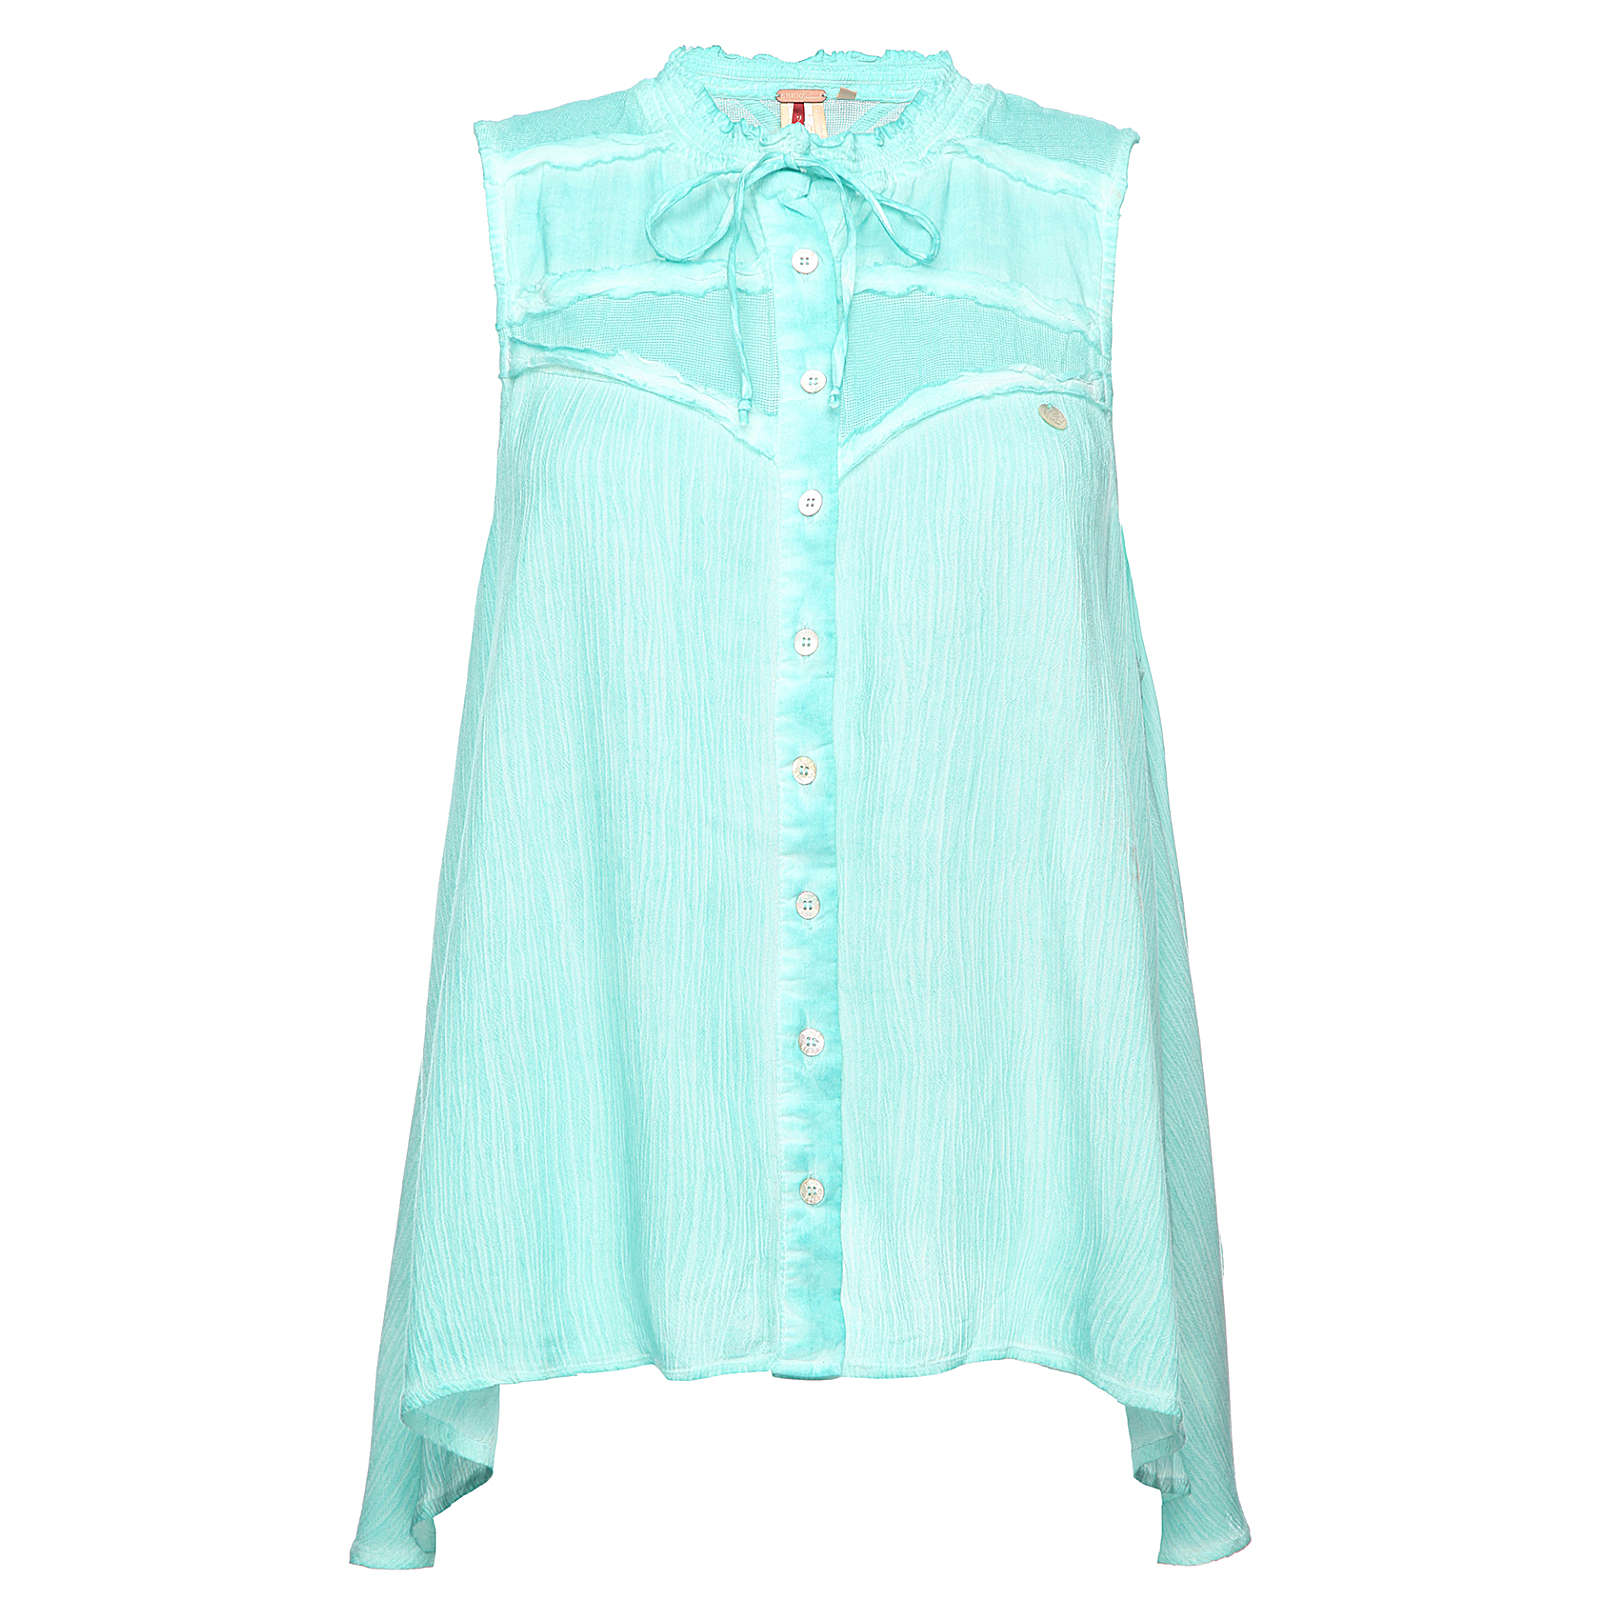 Khujo Top blau Damen Gr. 34